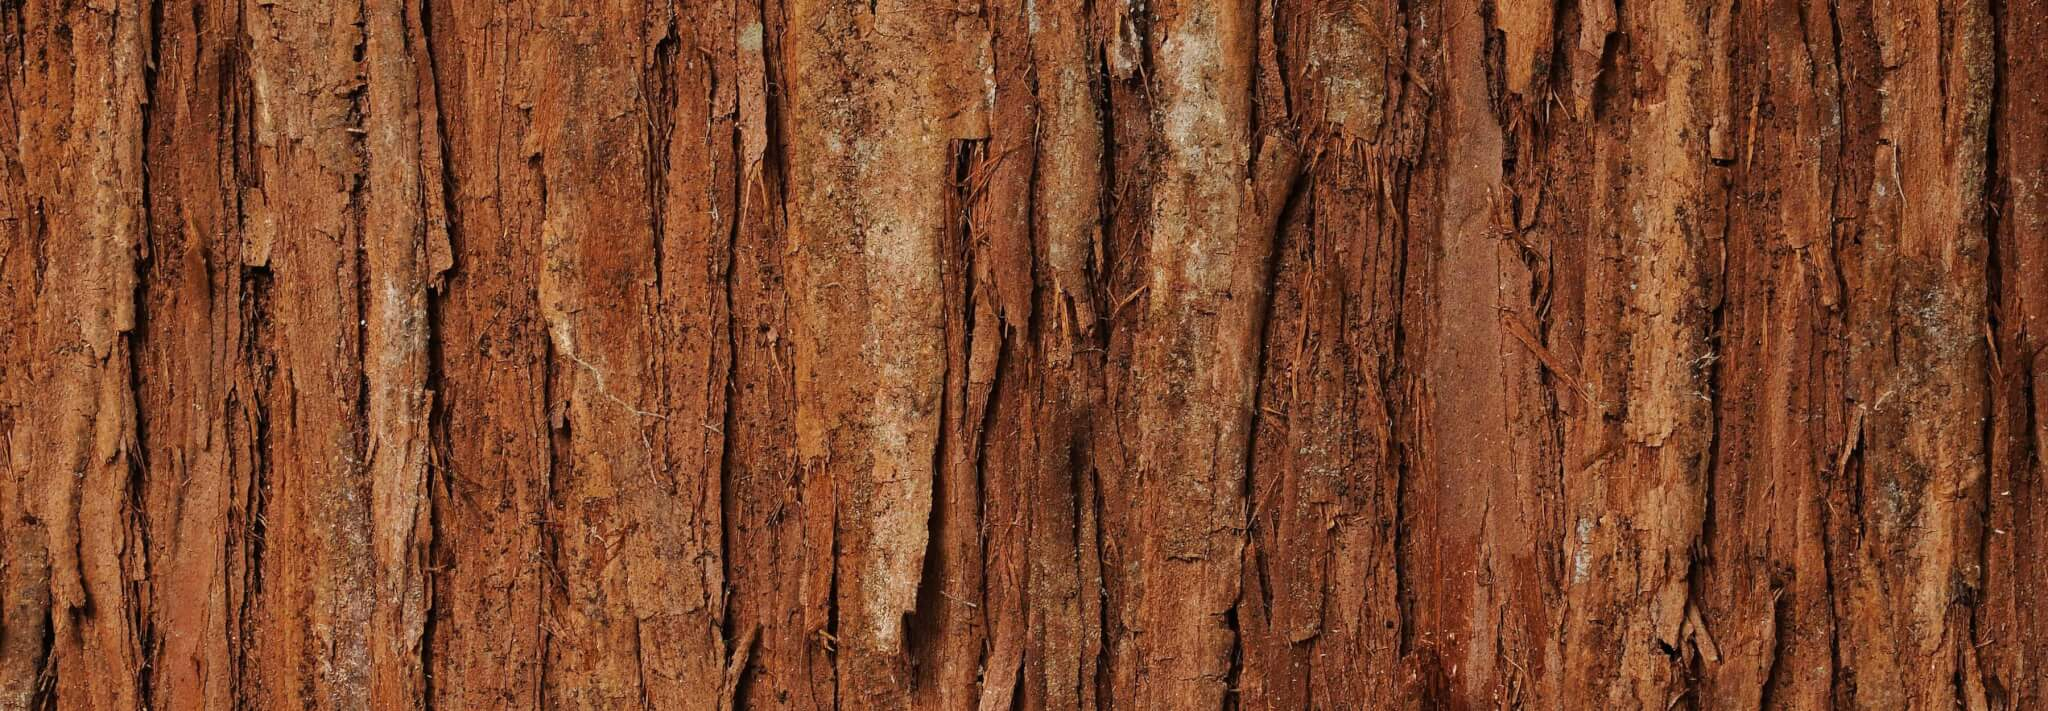 Benefits of Cedarwood